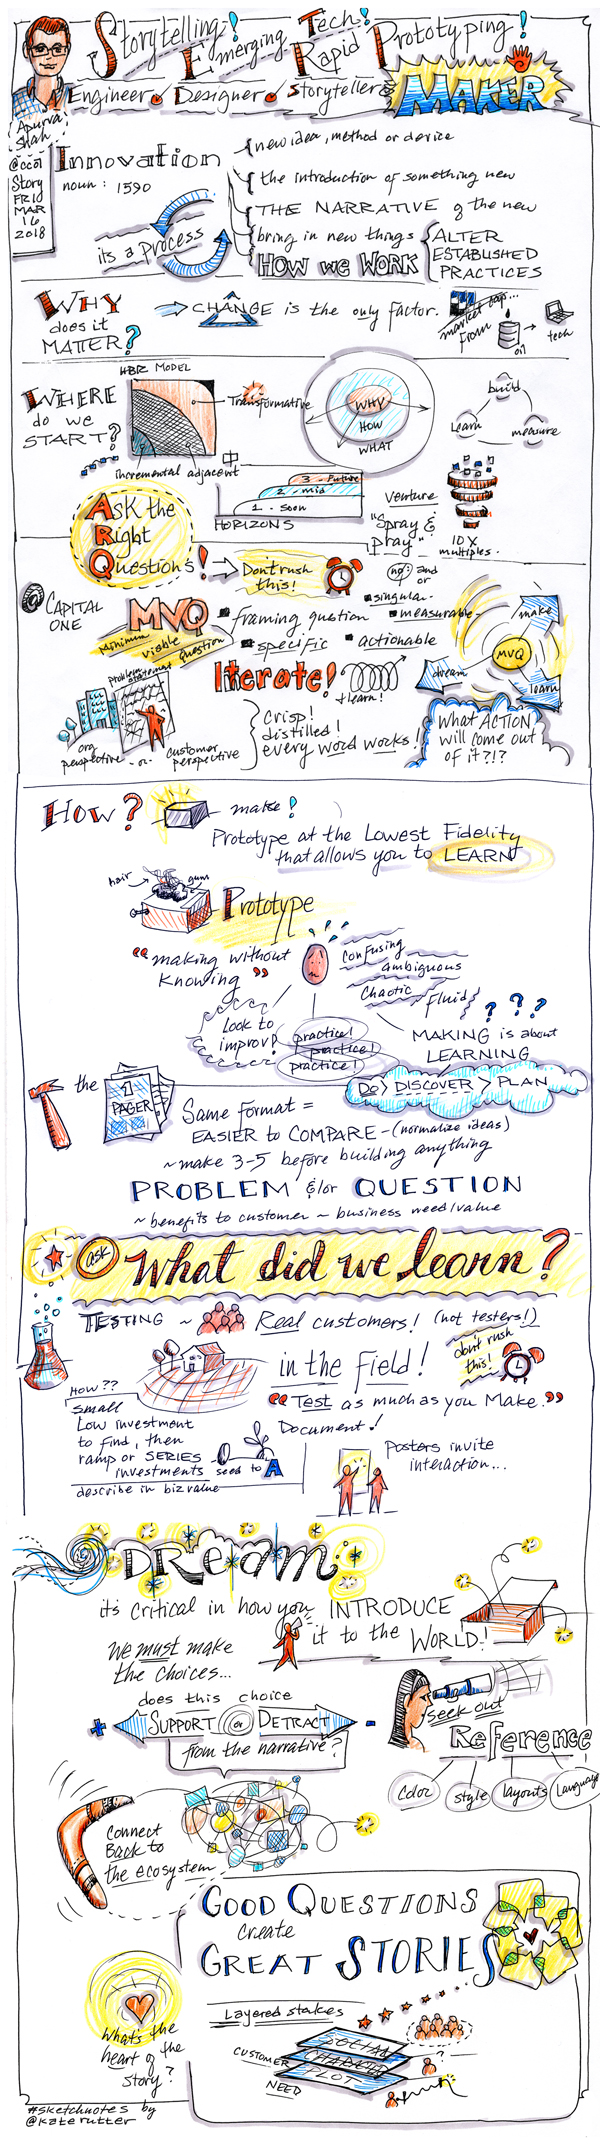 Sketchnotes from Apurva Shah, March 16, 2018